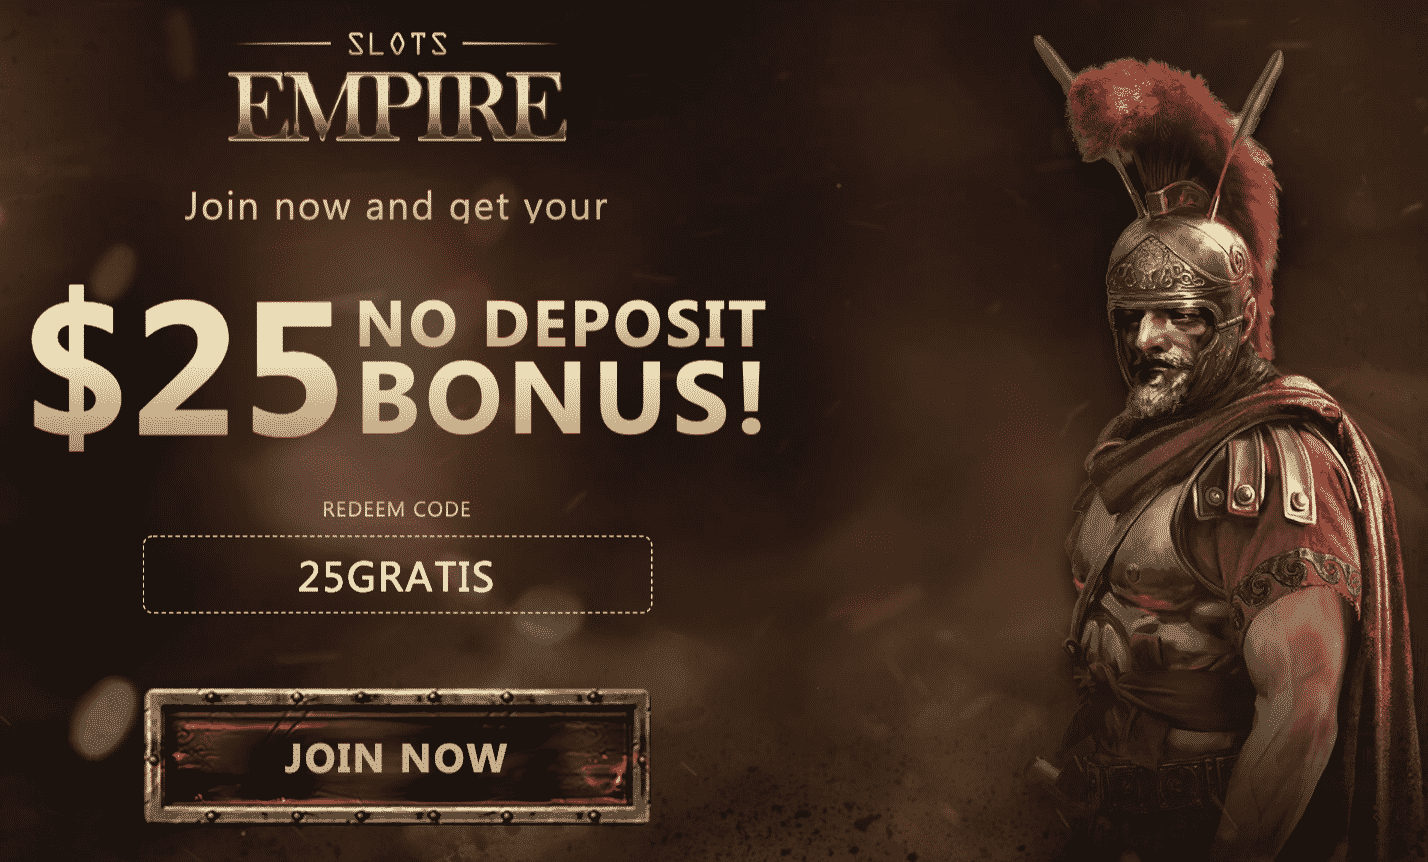 ★ Register and Grab C$25 No Deposit Bonus at Slots Empire